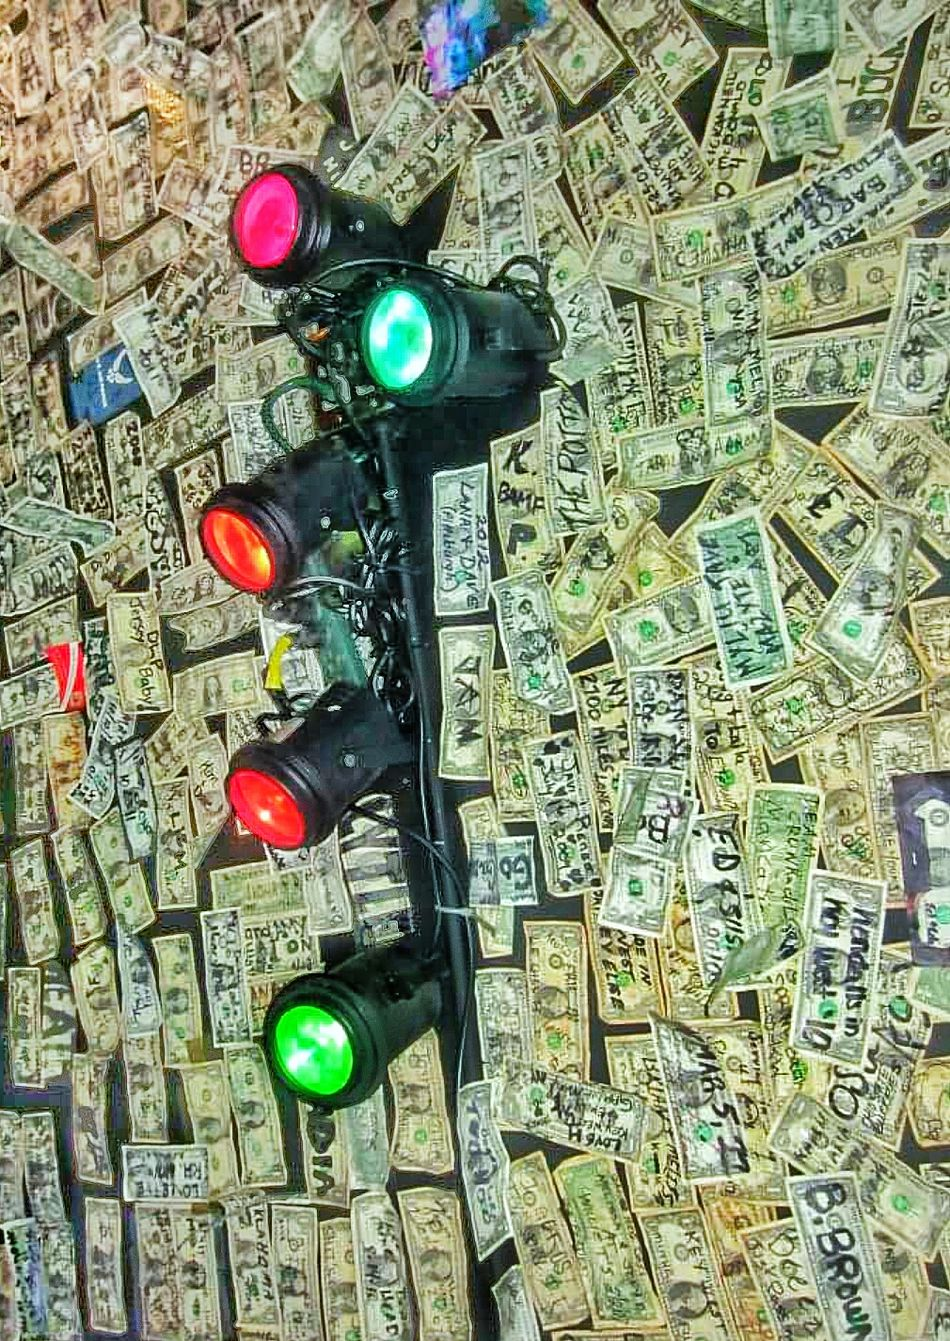 Money Cash Ceiling Ceiling Lights Bar And Restaurant Cool Scene Artistic Expression Dollar Bills Art Looking Up Dollars Wasted Money Must See Destination Indoors  Nightlife Inside Darkness Places You Must To See Abstract Still Life Indoors